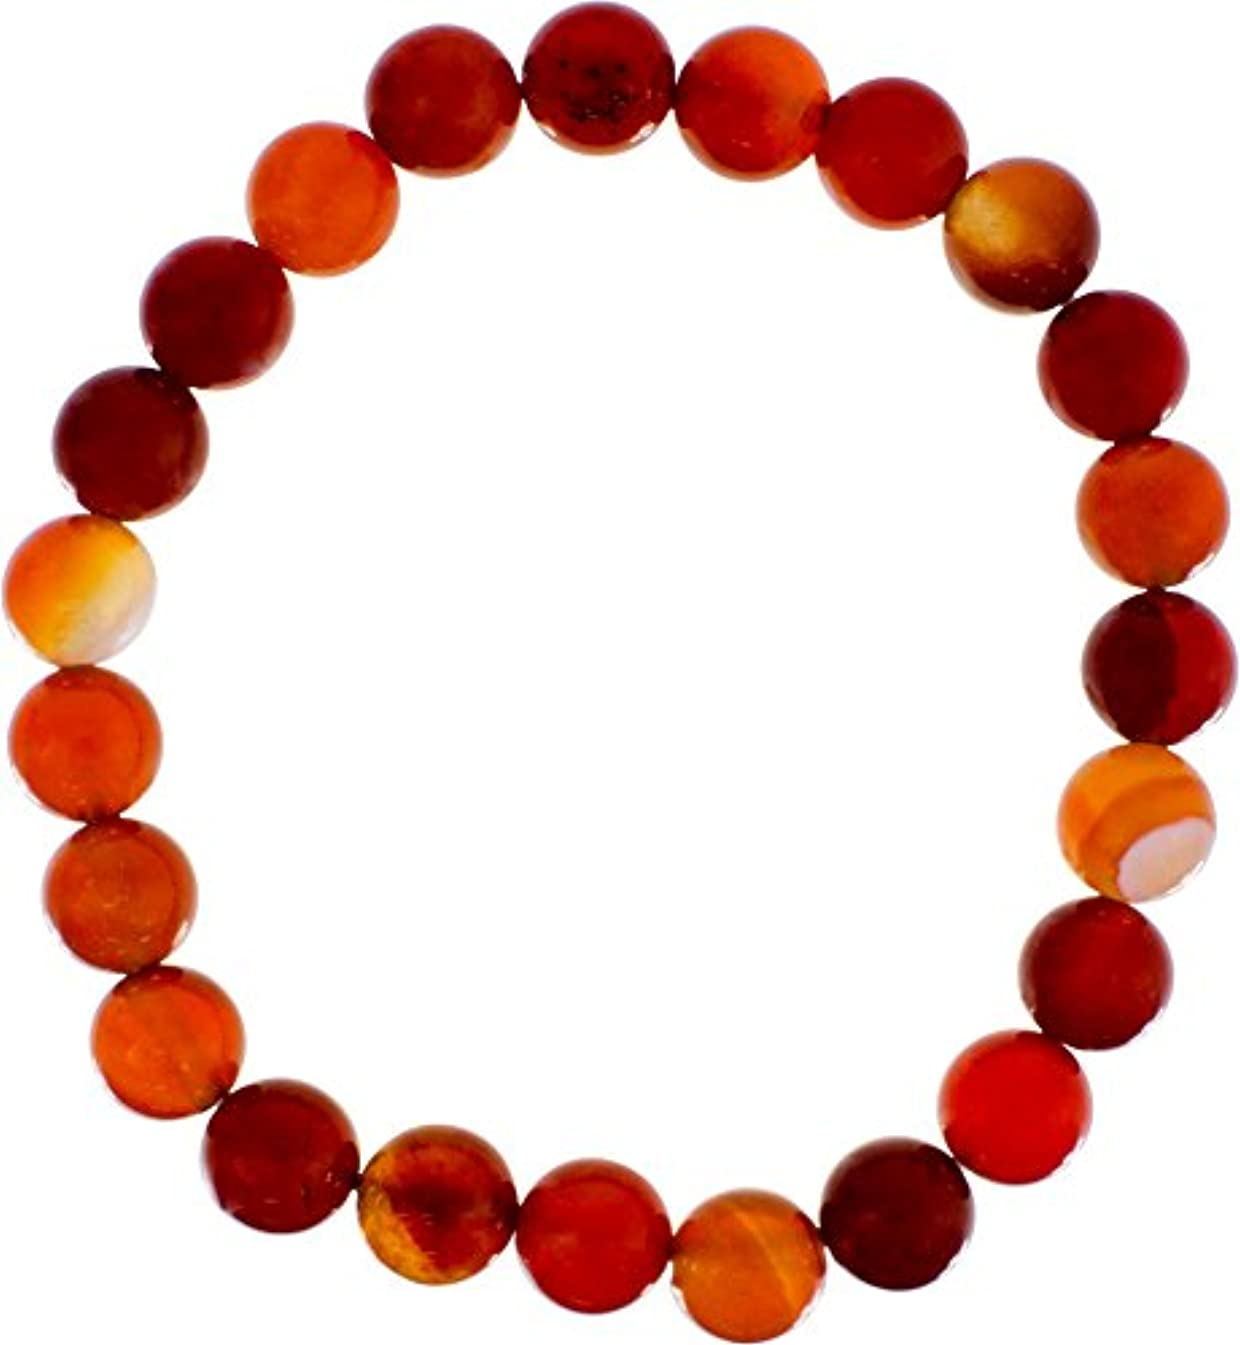 Elastic Bracelet 8mm Round Beads - Brown & Red Agate